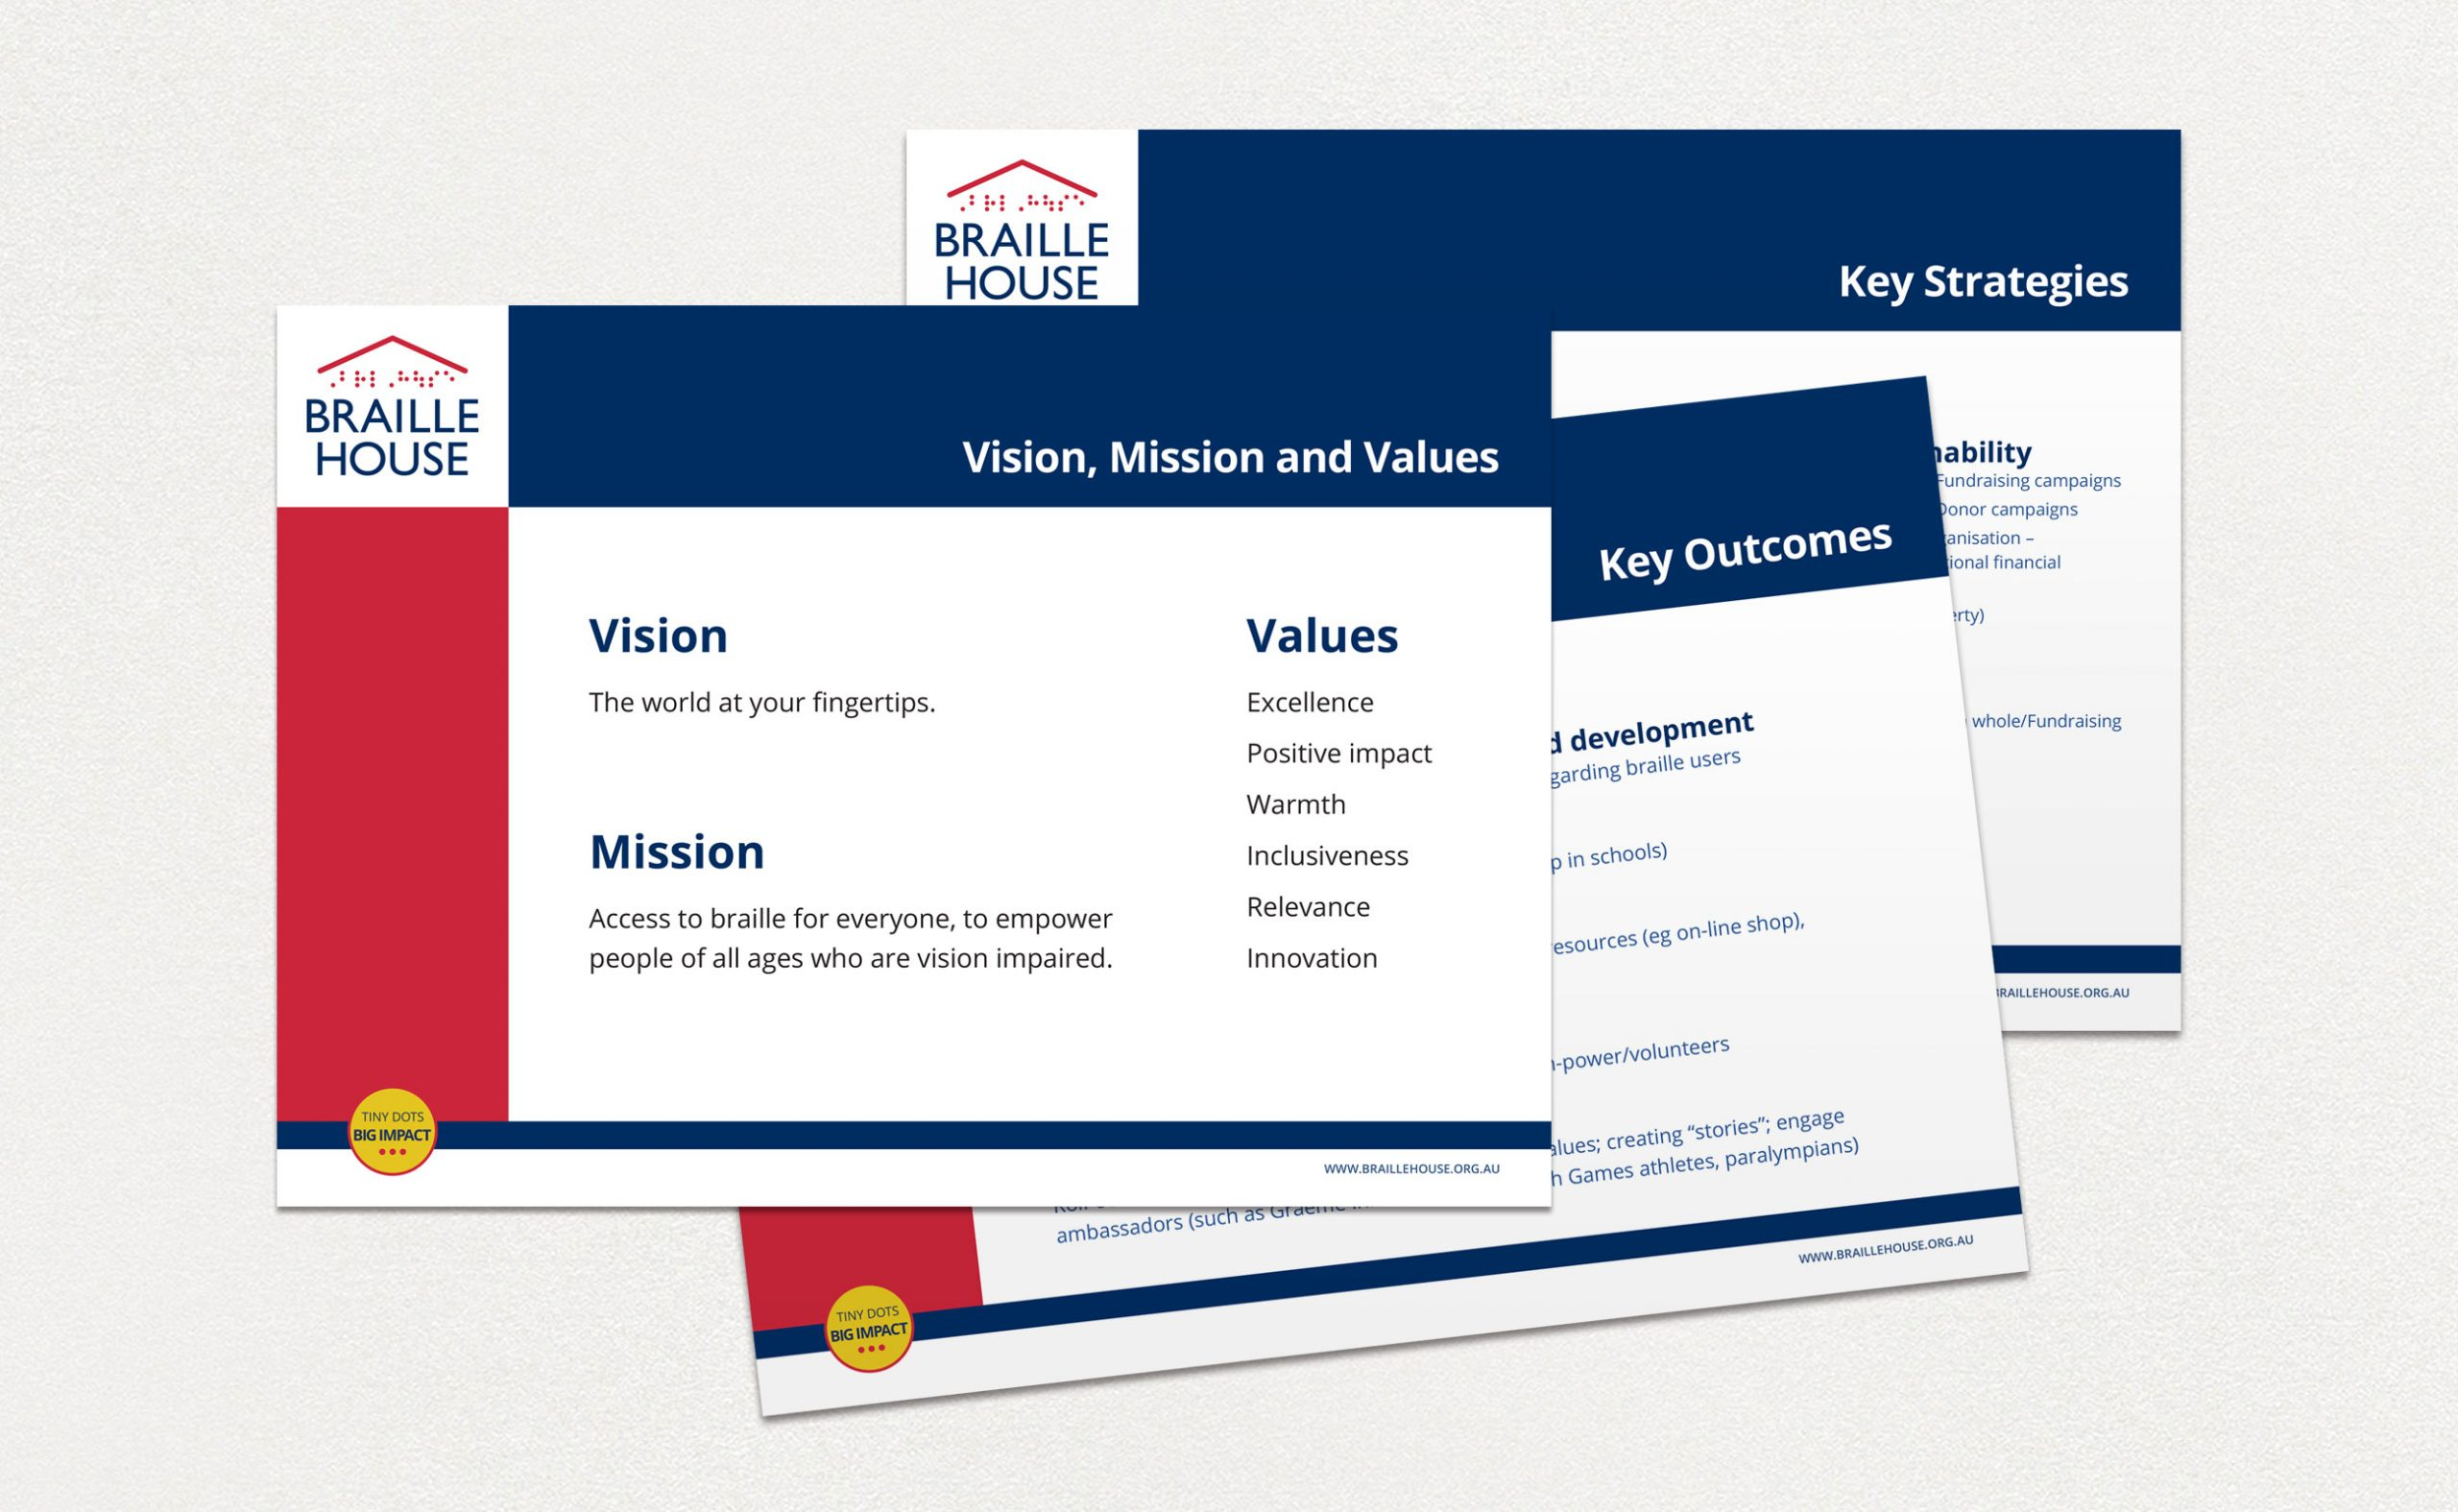 Braille House documents with Vision, Mission and Values, Key Goals and Outcomes